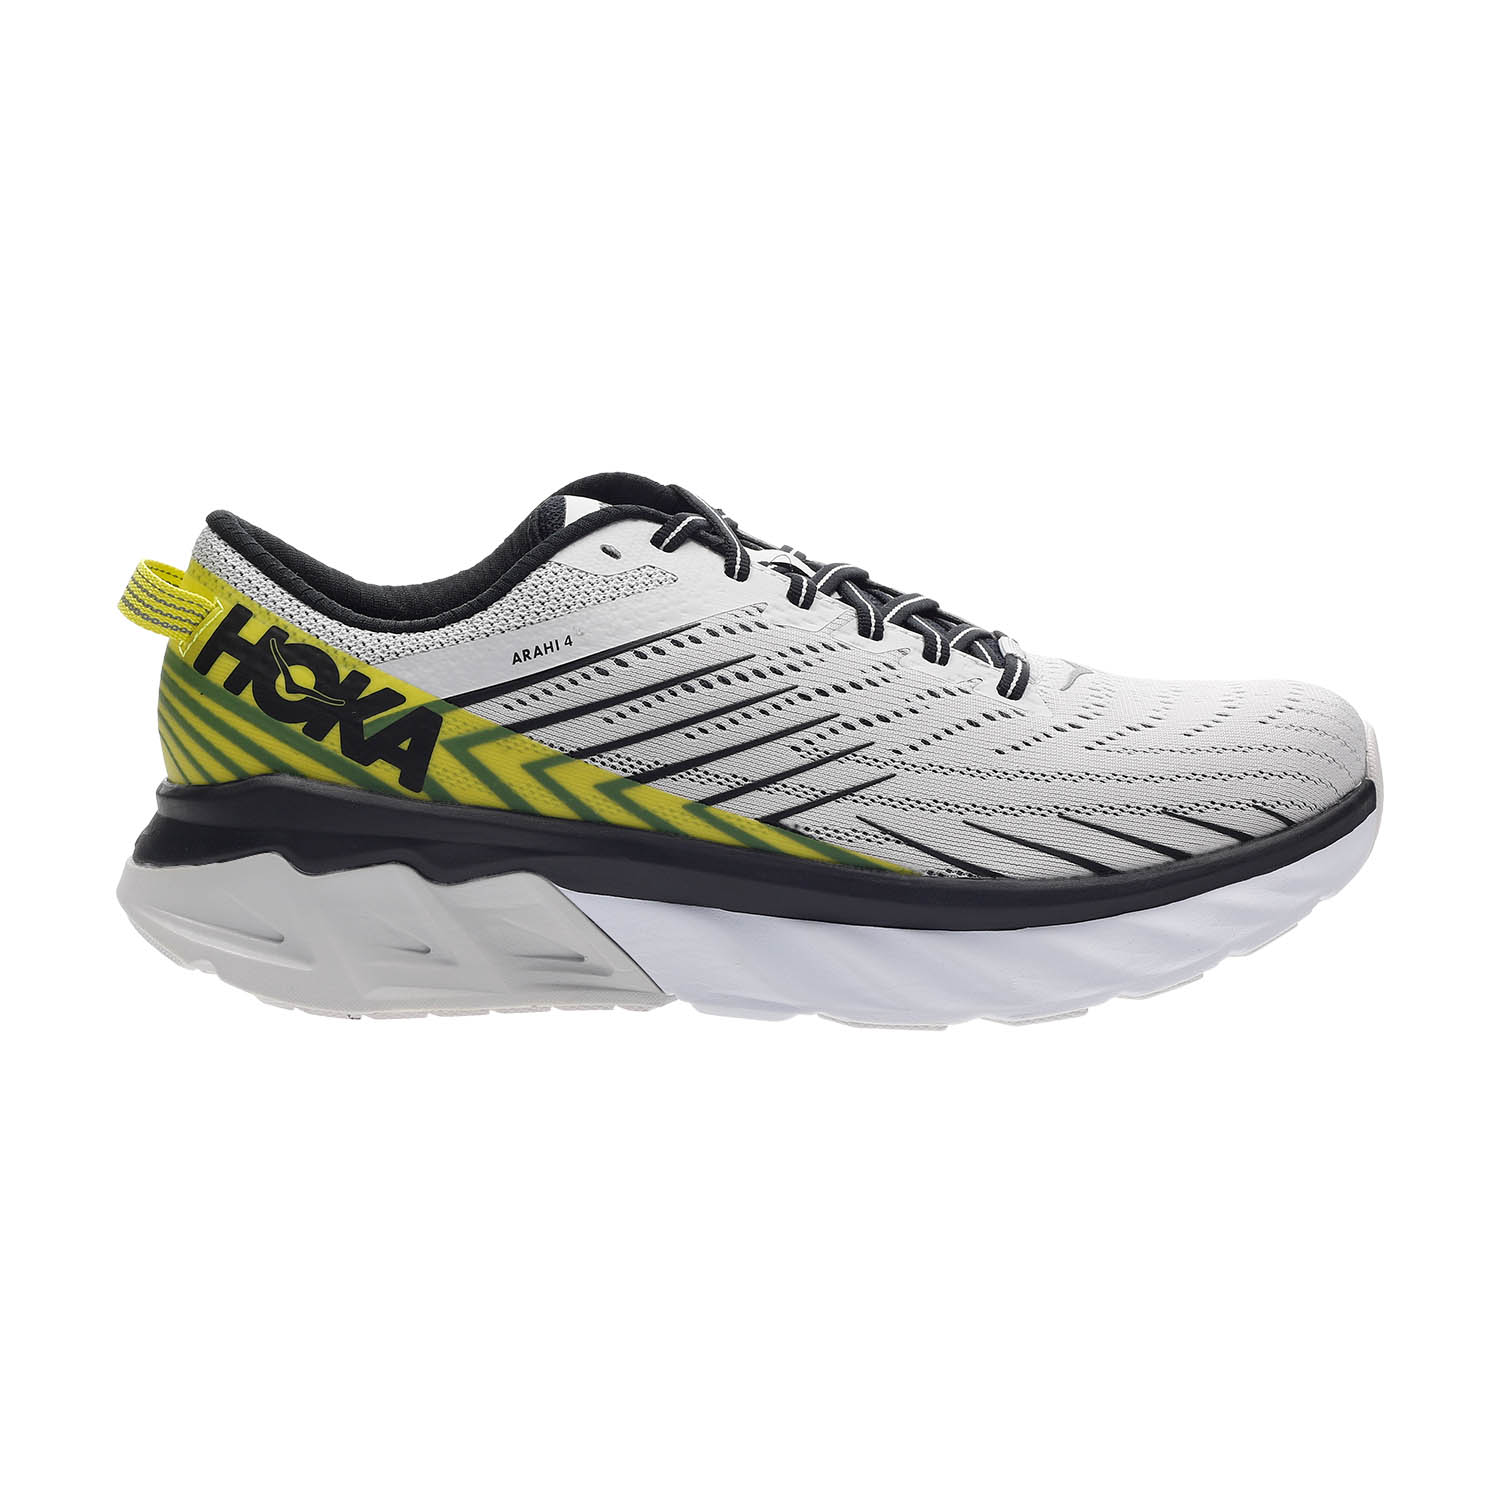 Hoka One One Arahi 4 - Nimbus Cloud/Anthracite